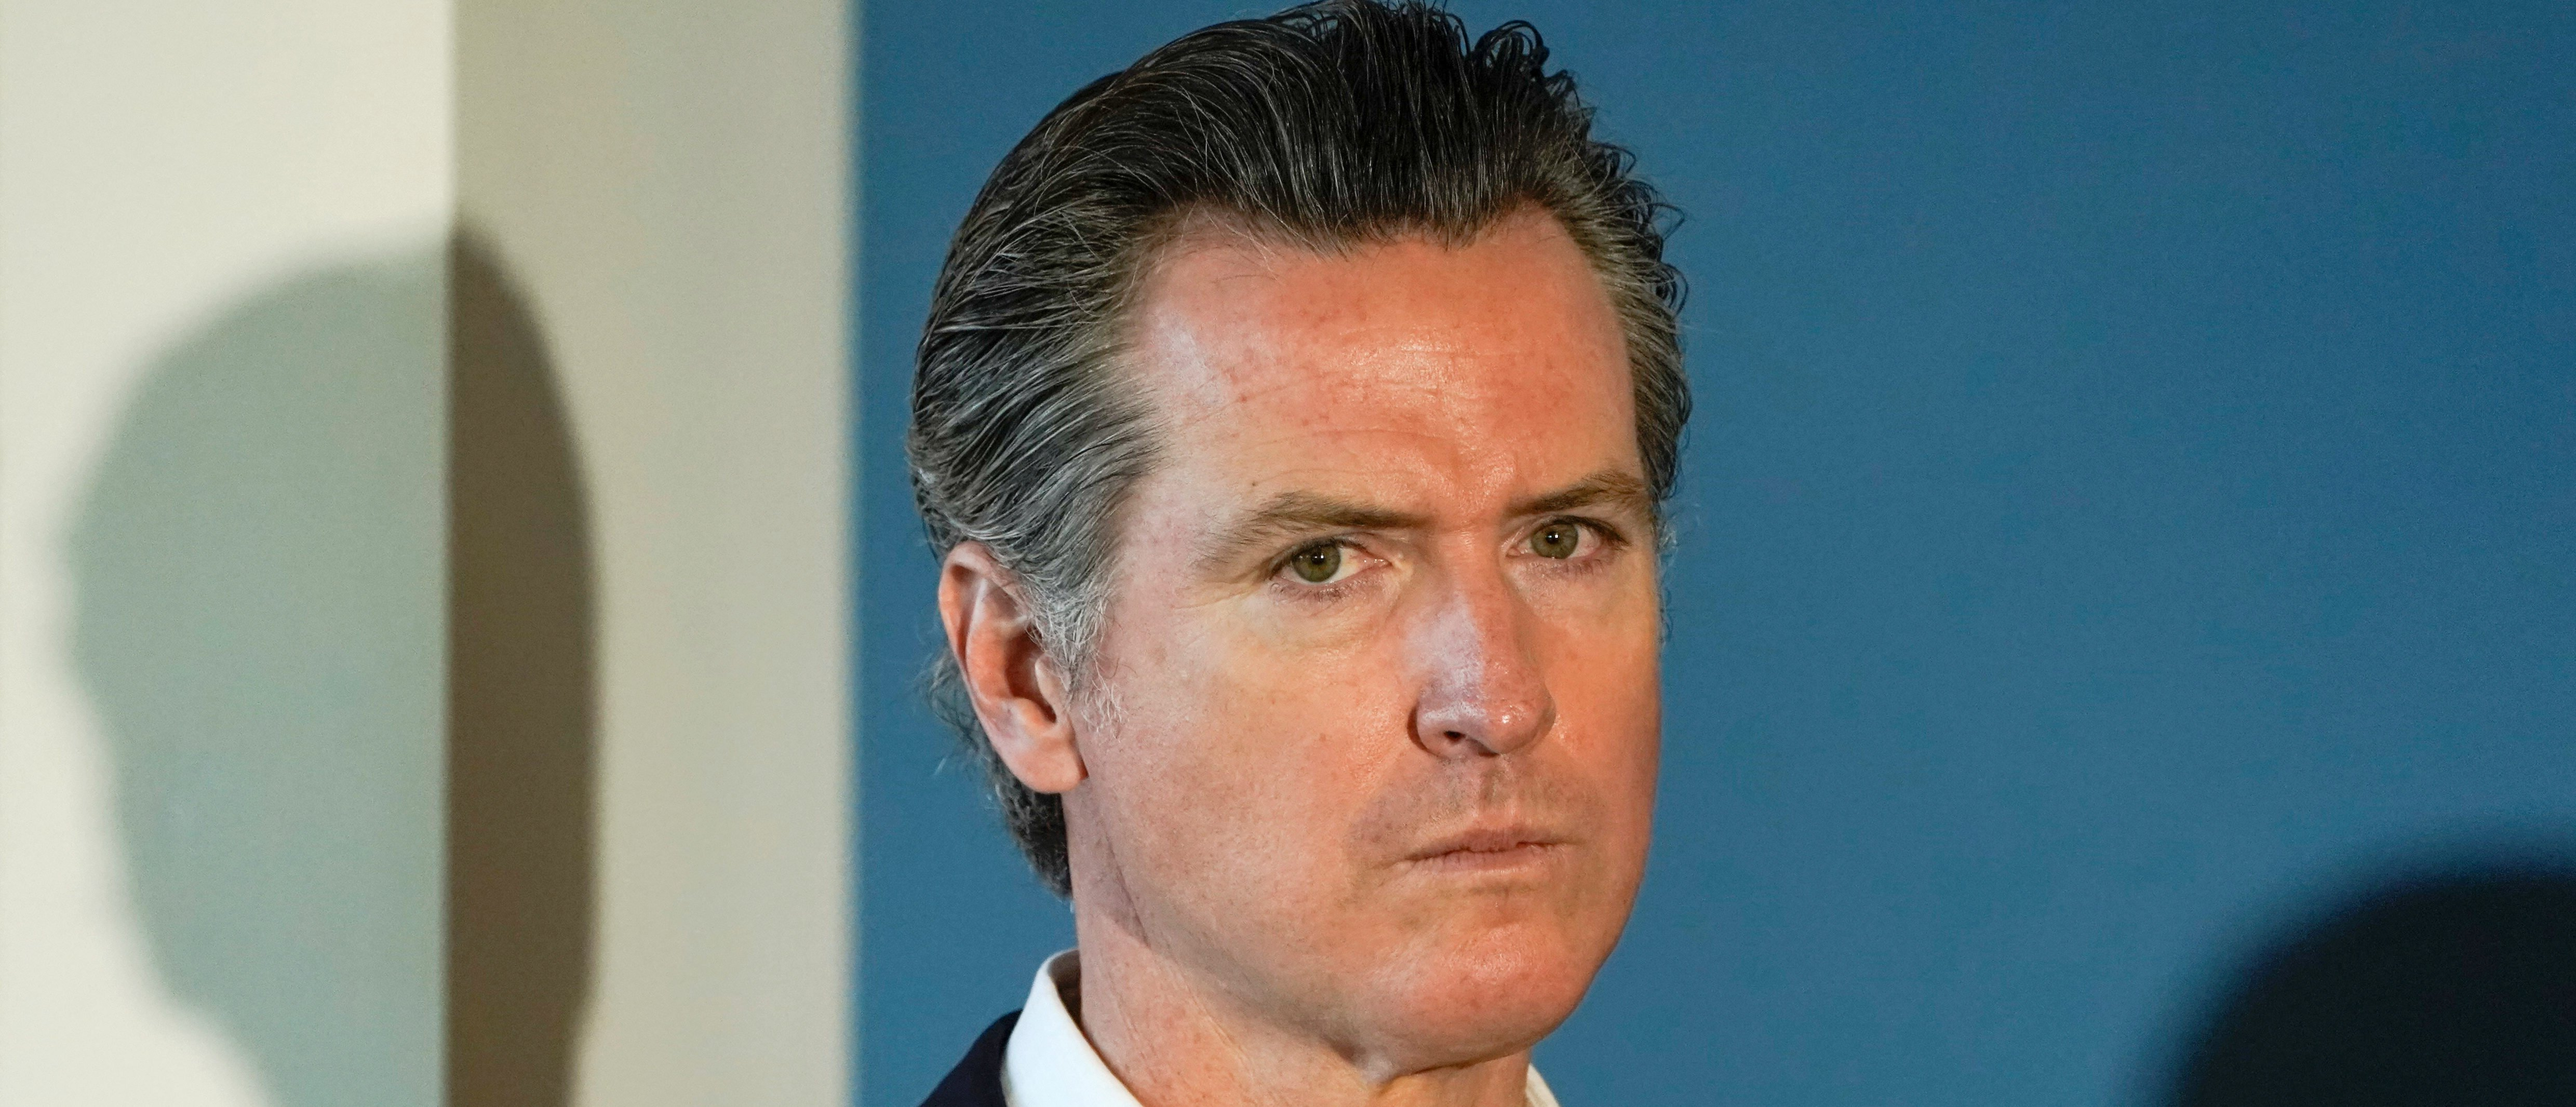 Gov Gavin Newsom Struggles To Stay In Control As California Goes Dark, Wildfires Spread, And Gas Prices Spike